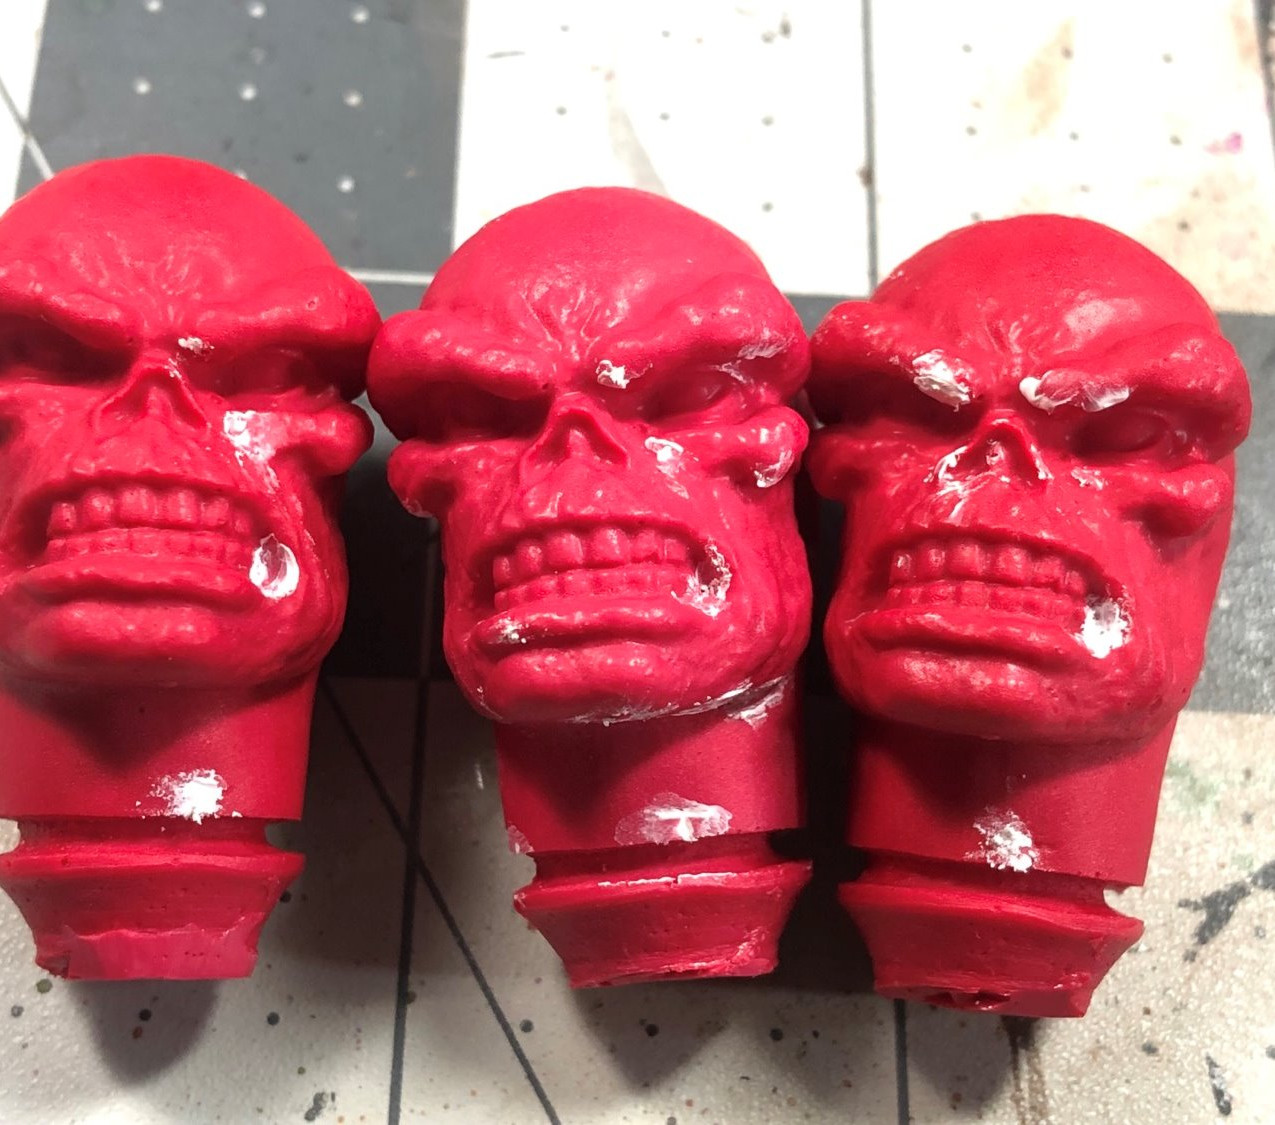 3 Mego Heads with putty